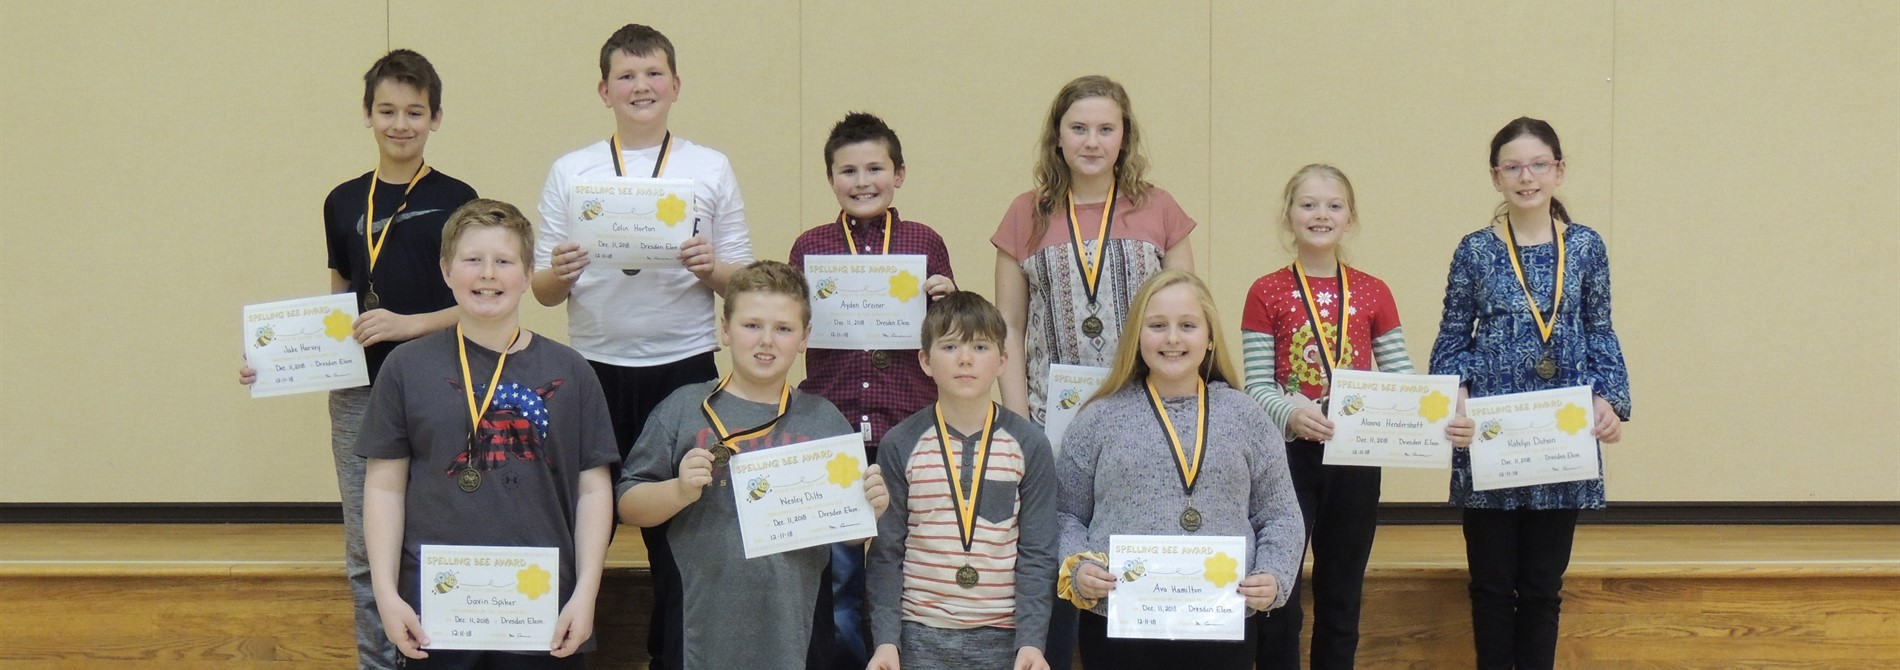 Congrats top 10 Building Spelling Bee